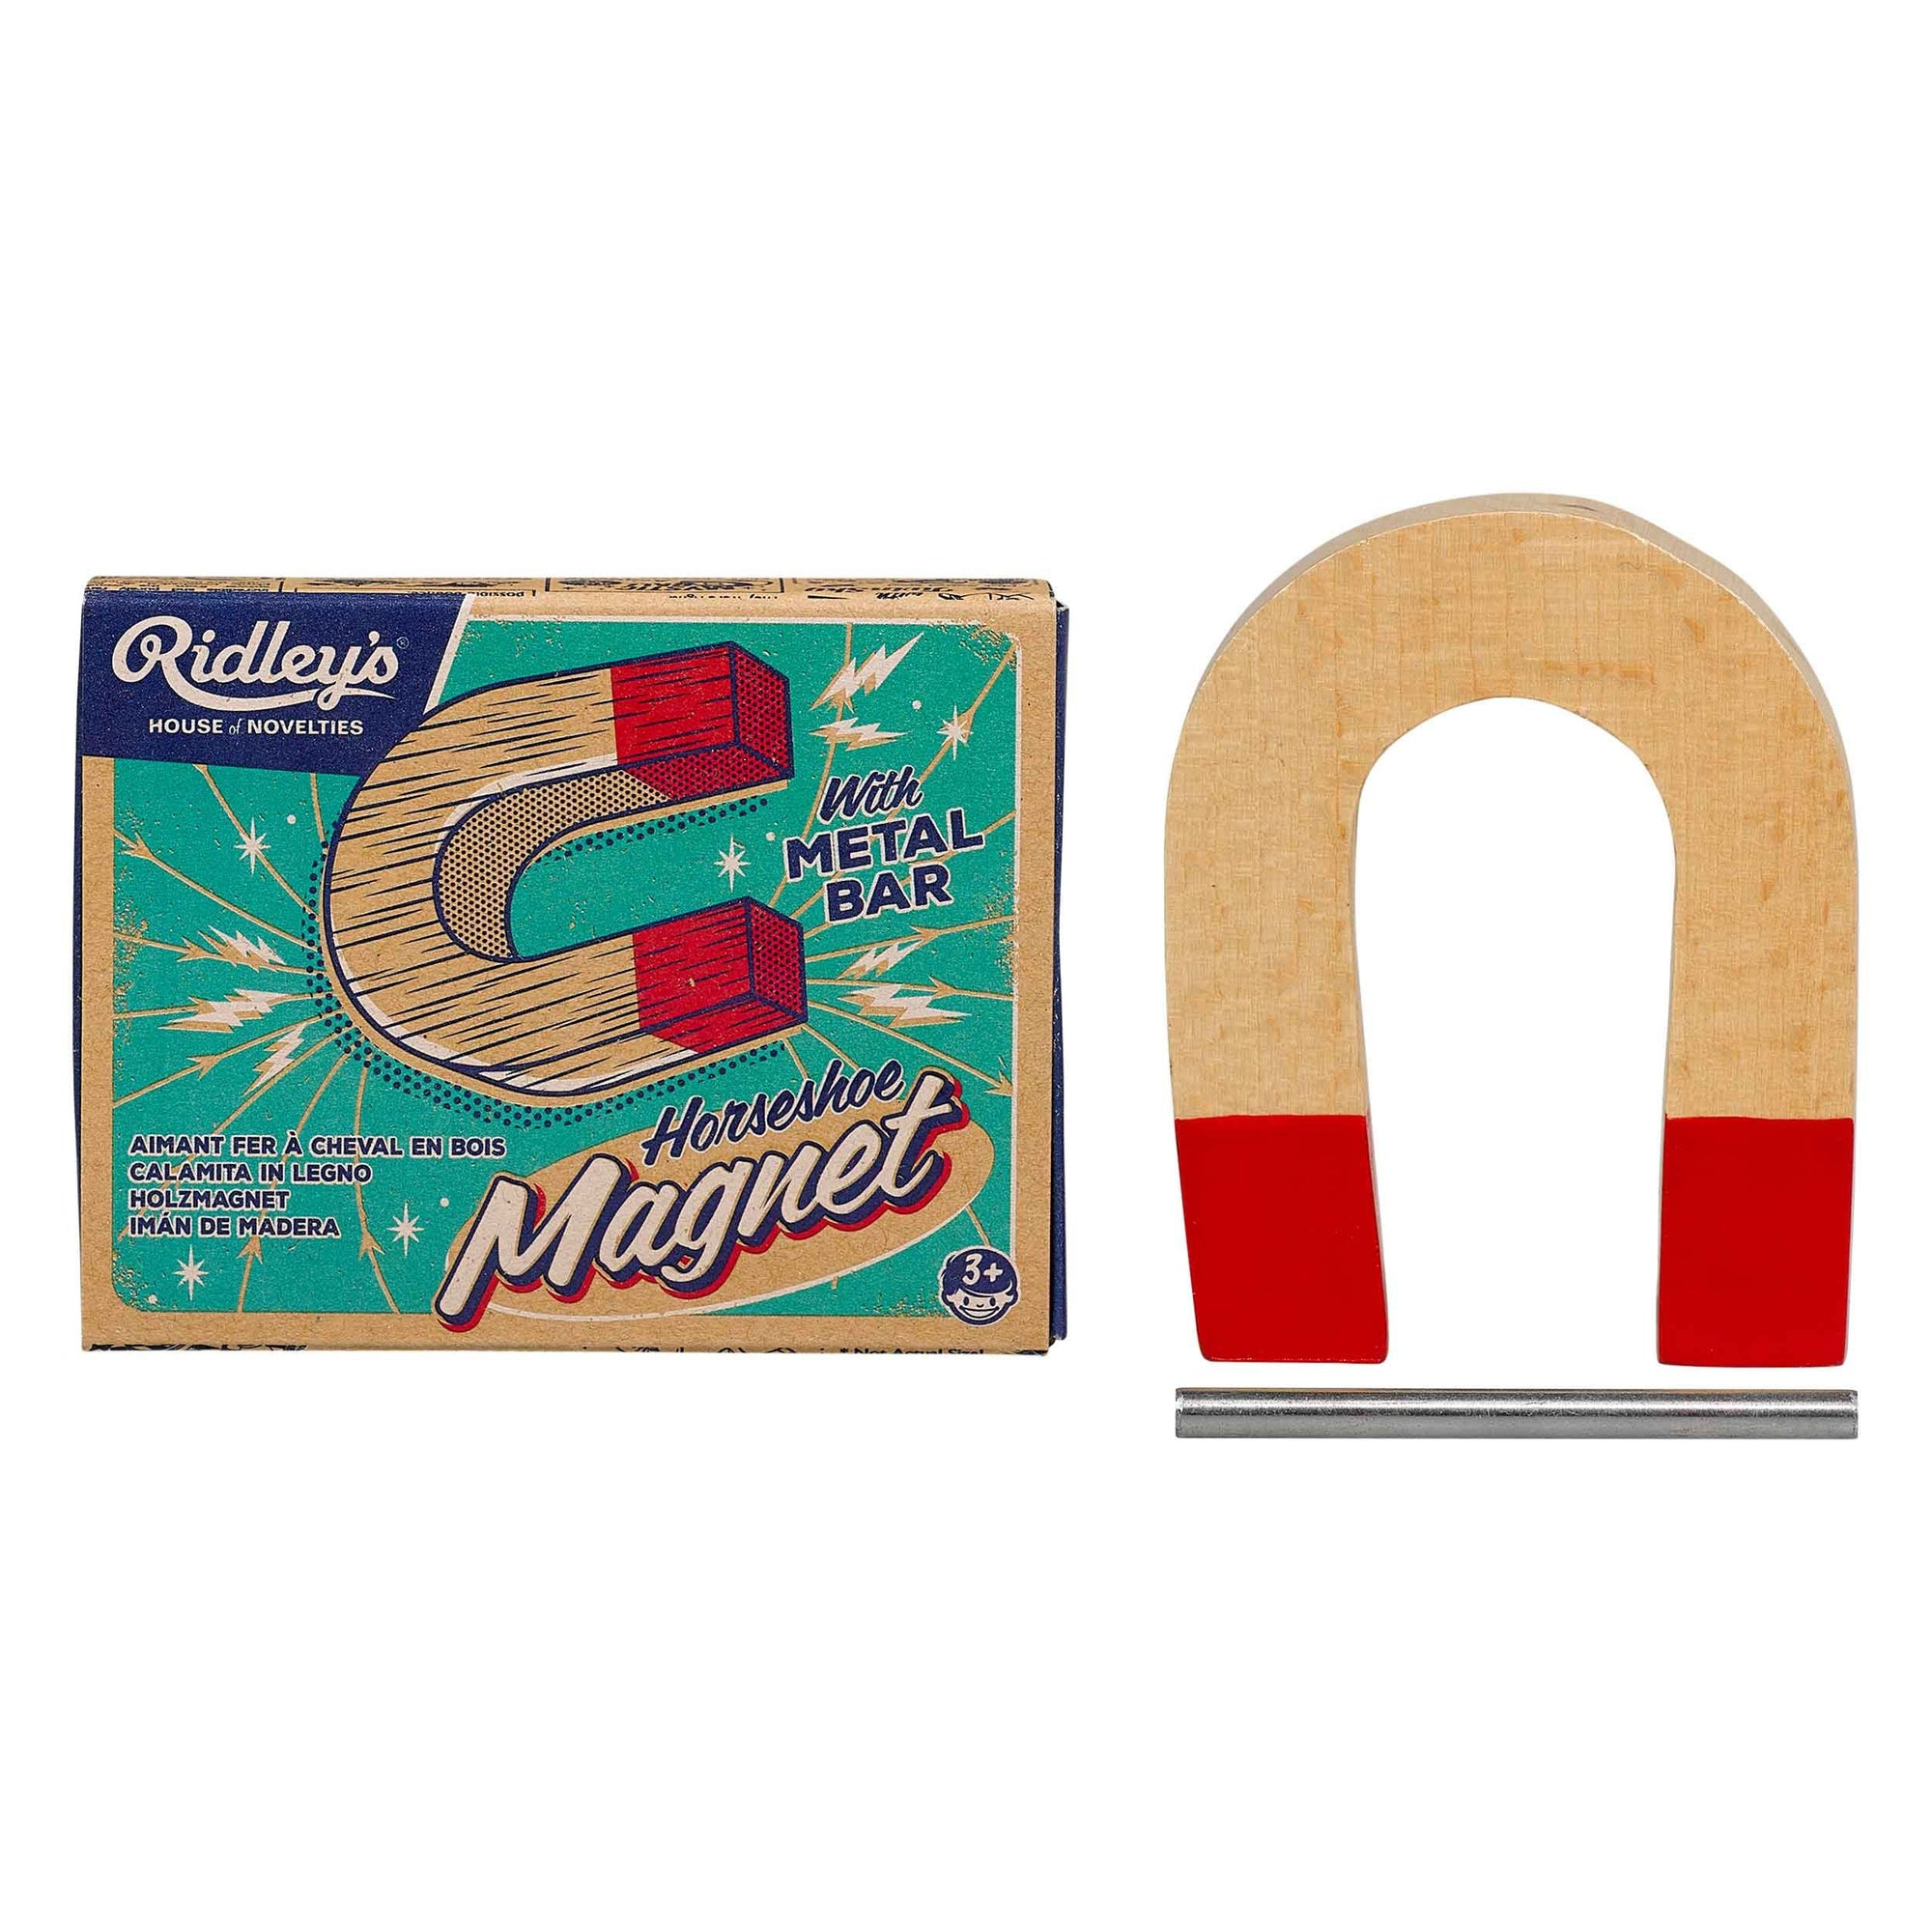 Ridley's Wooden Horseshoe Magnet